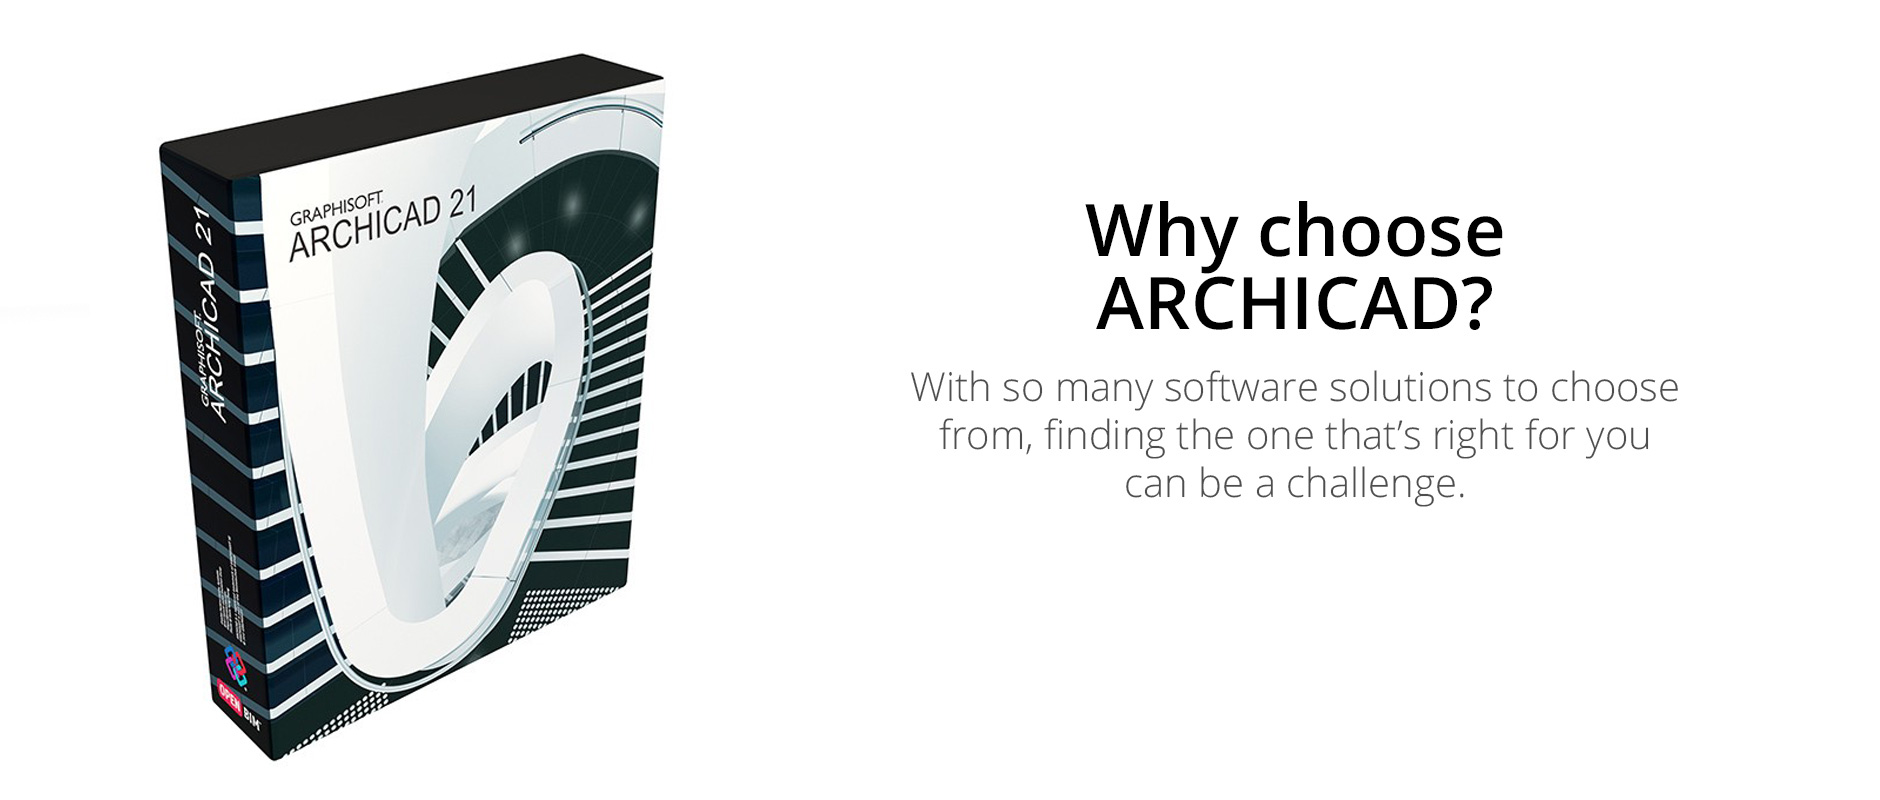 Why choose ARCHICAD